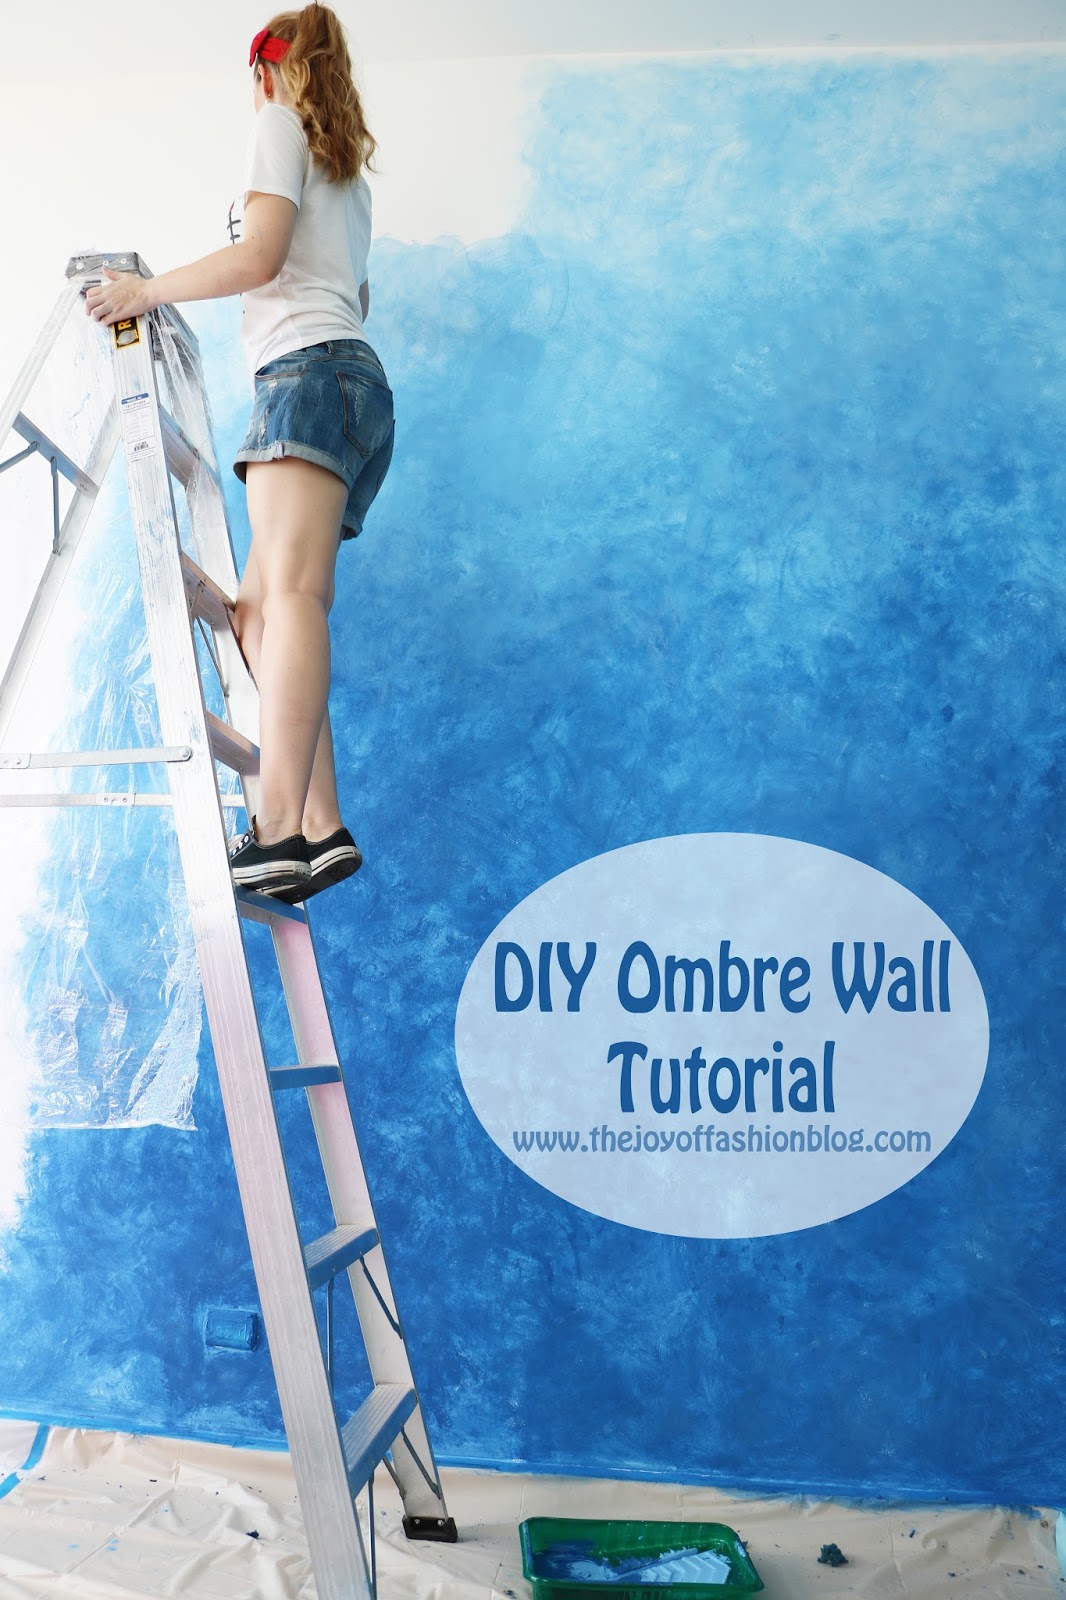 Step by step tutorial on how to create this ombre wall effect, click through!